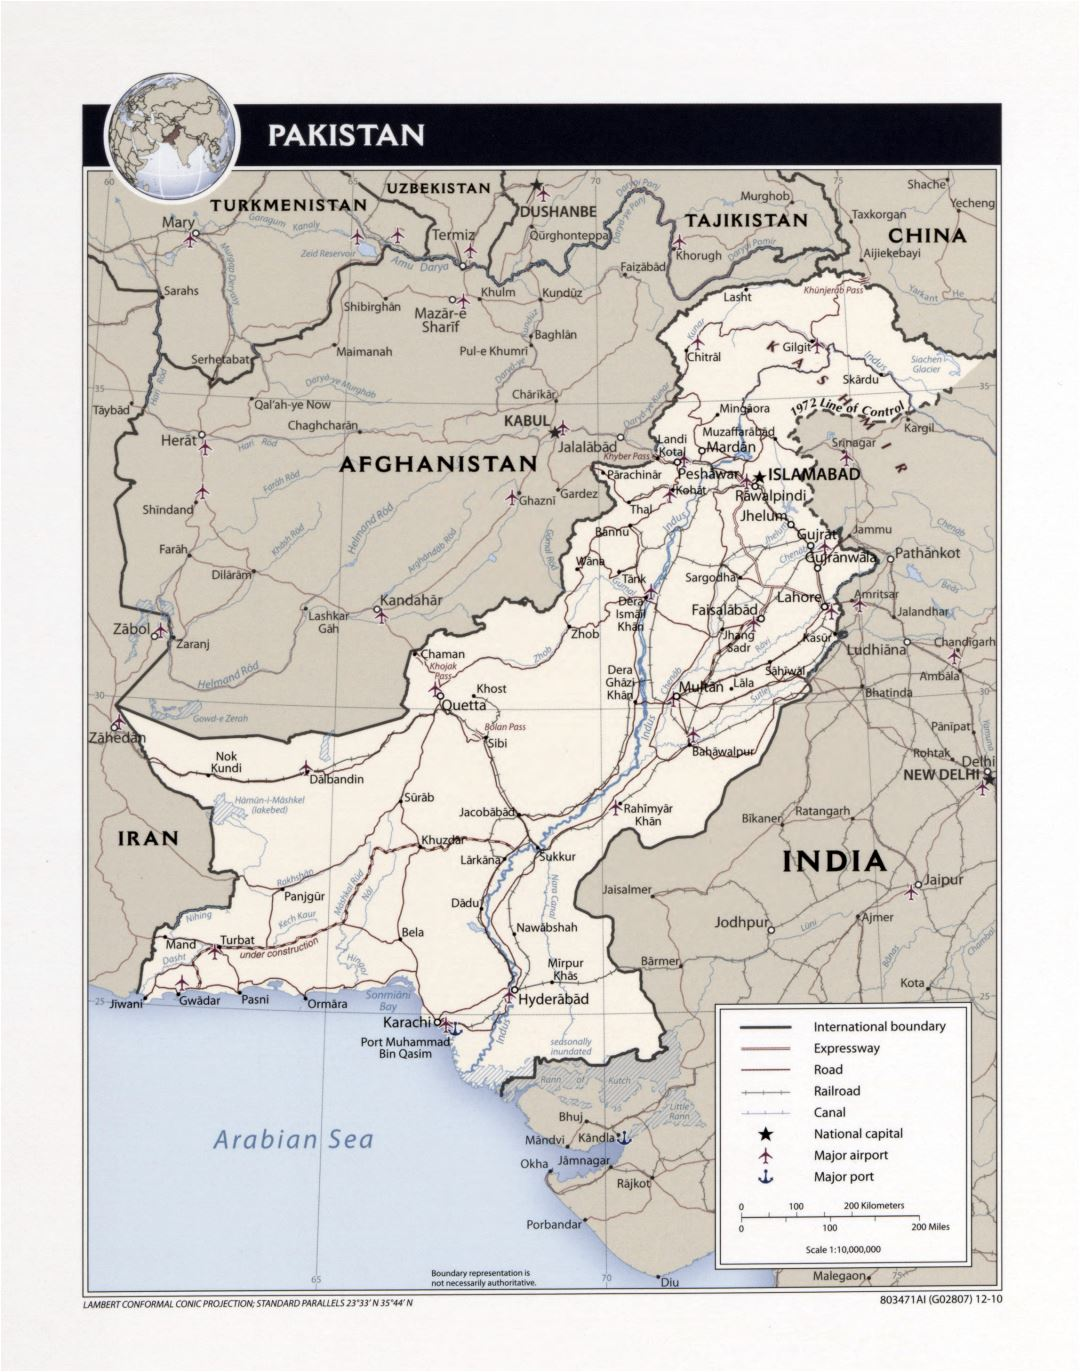 Large detailed political map of Pakistan with roads, railroads, cities, airports, ports and other marks - 2010